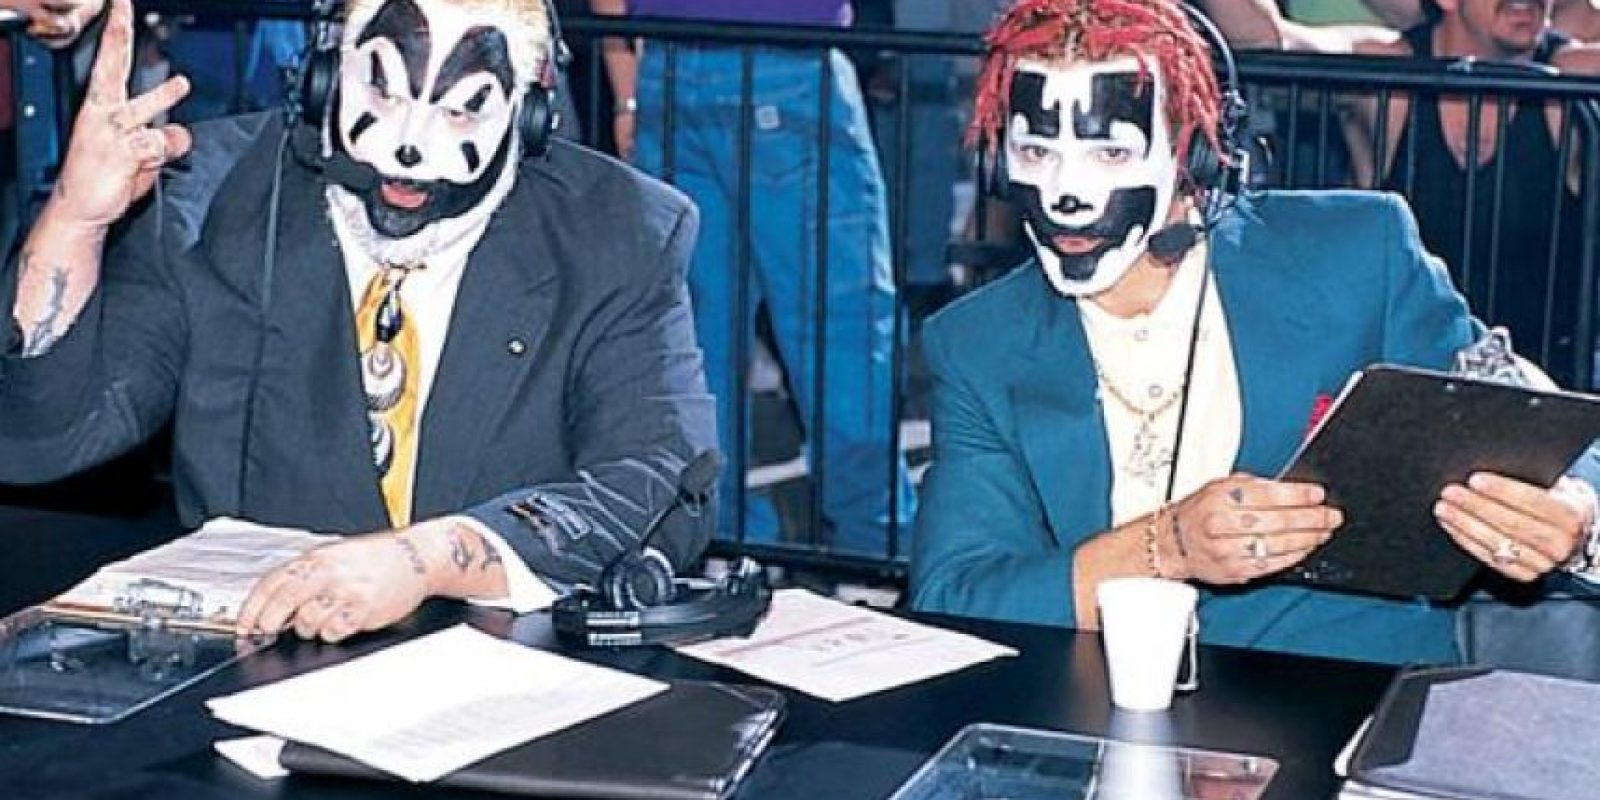 The Insane Clown Posse, Violent J y Shaggy 2 Dope. El duo de hip hop también han hecho una carrera en el encordado Foto: WWE